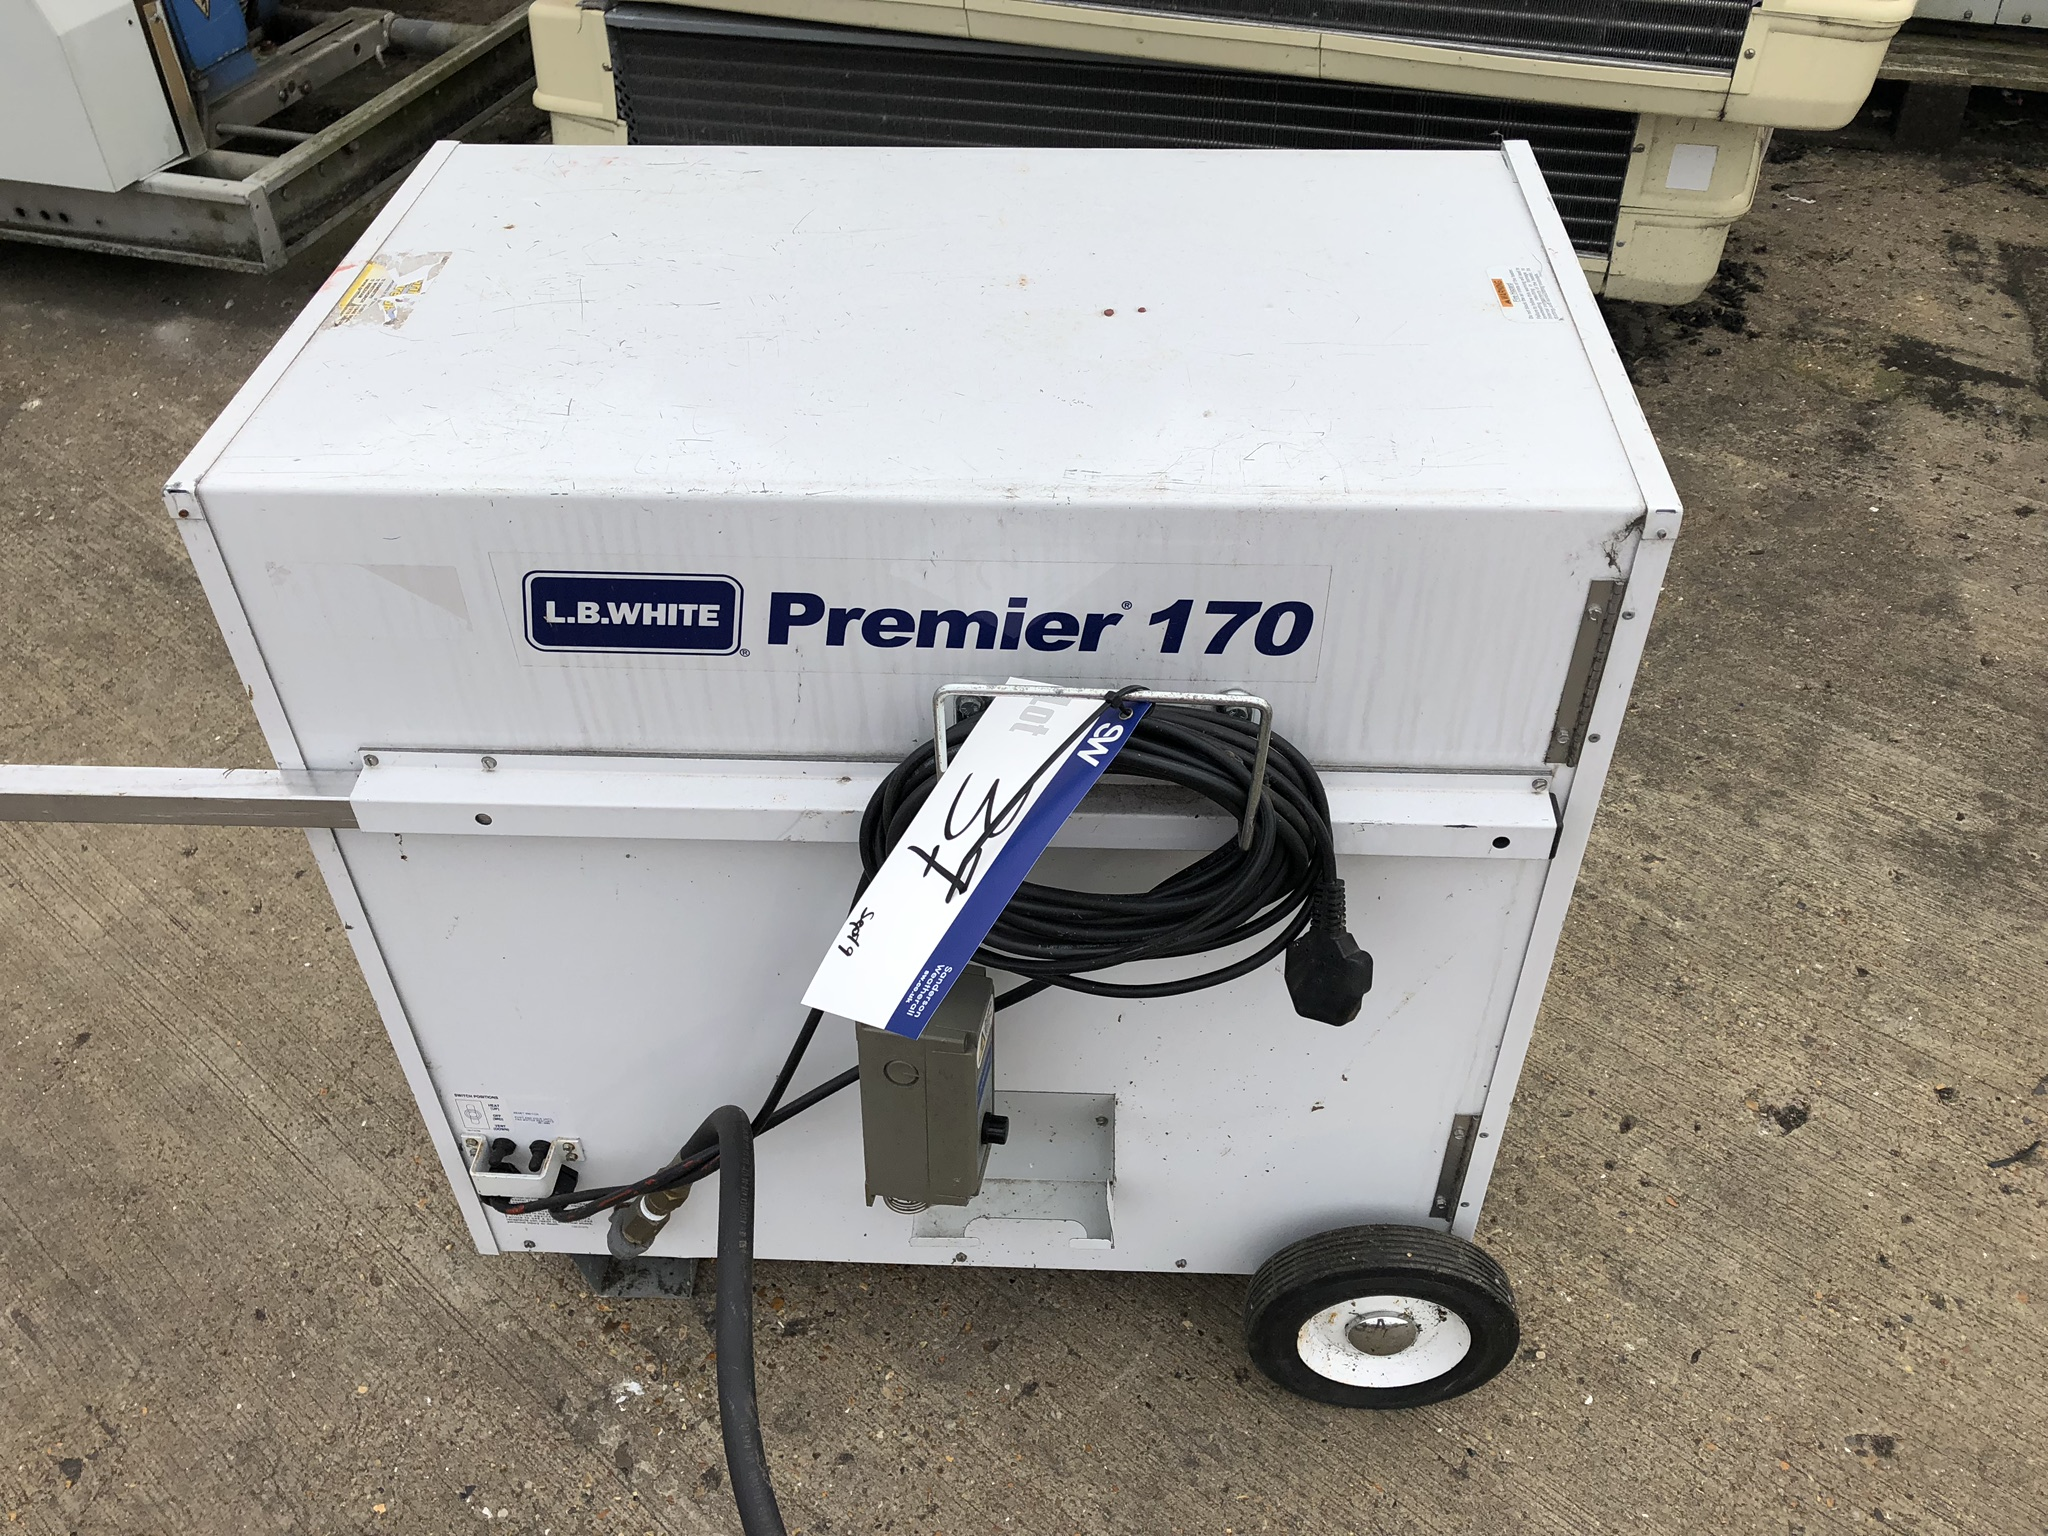 LB White Premier 170 TS Mobile Heater, lift out charge - £20